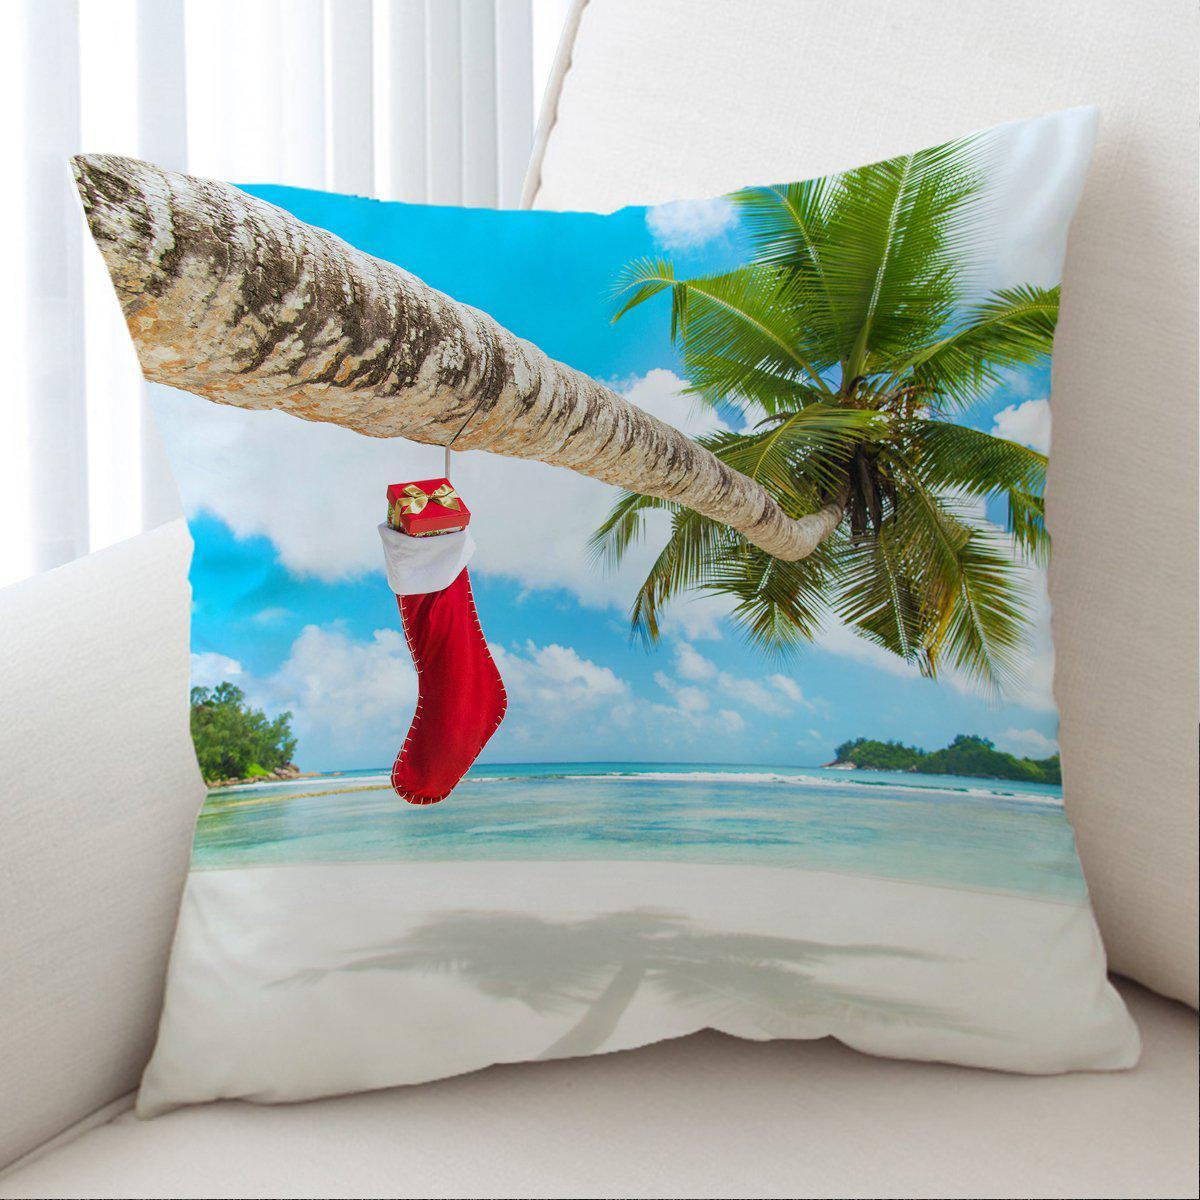 Christmas and Holidays Pillow Covers